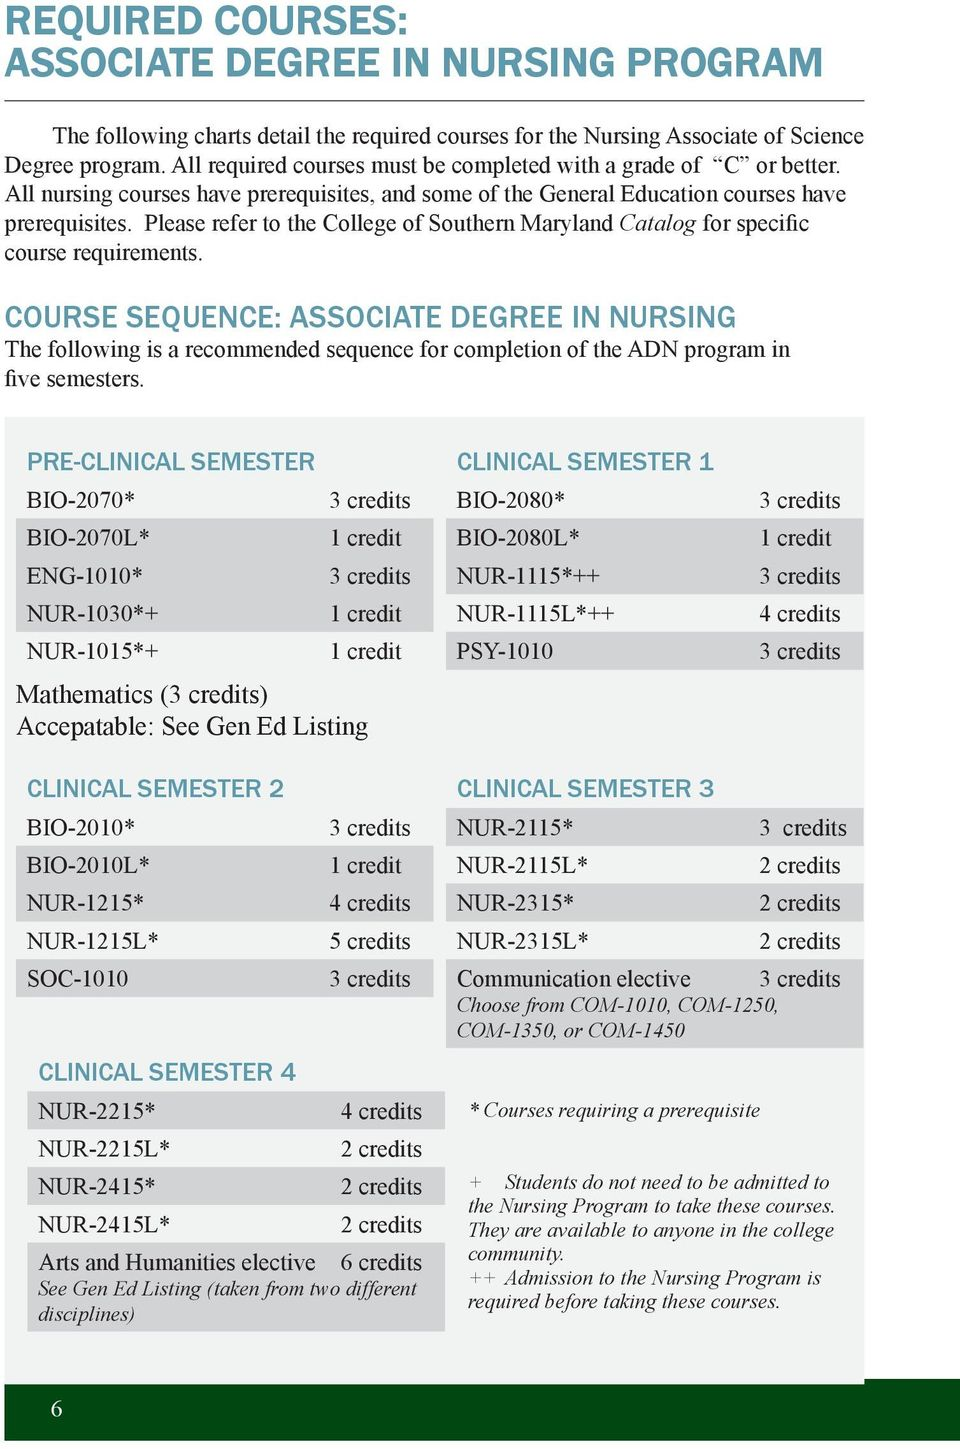 Please refer to the College of Southern Maryland Catalog for specific course requirements.